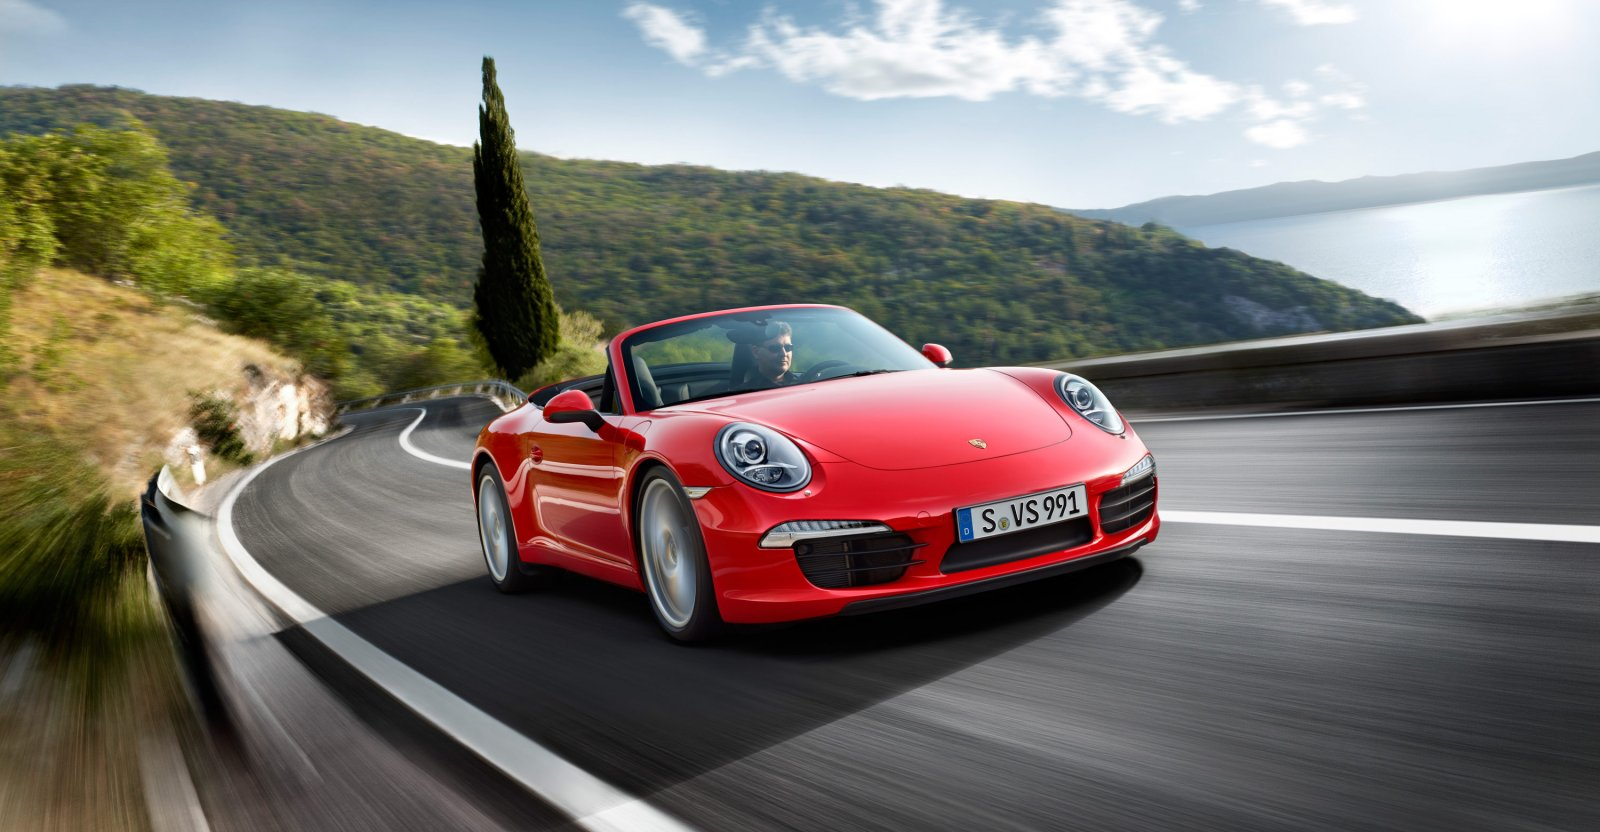 wallpapers-de-coches-porsche